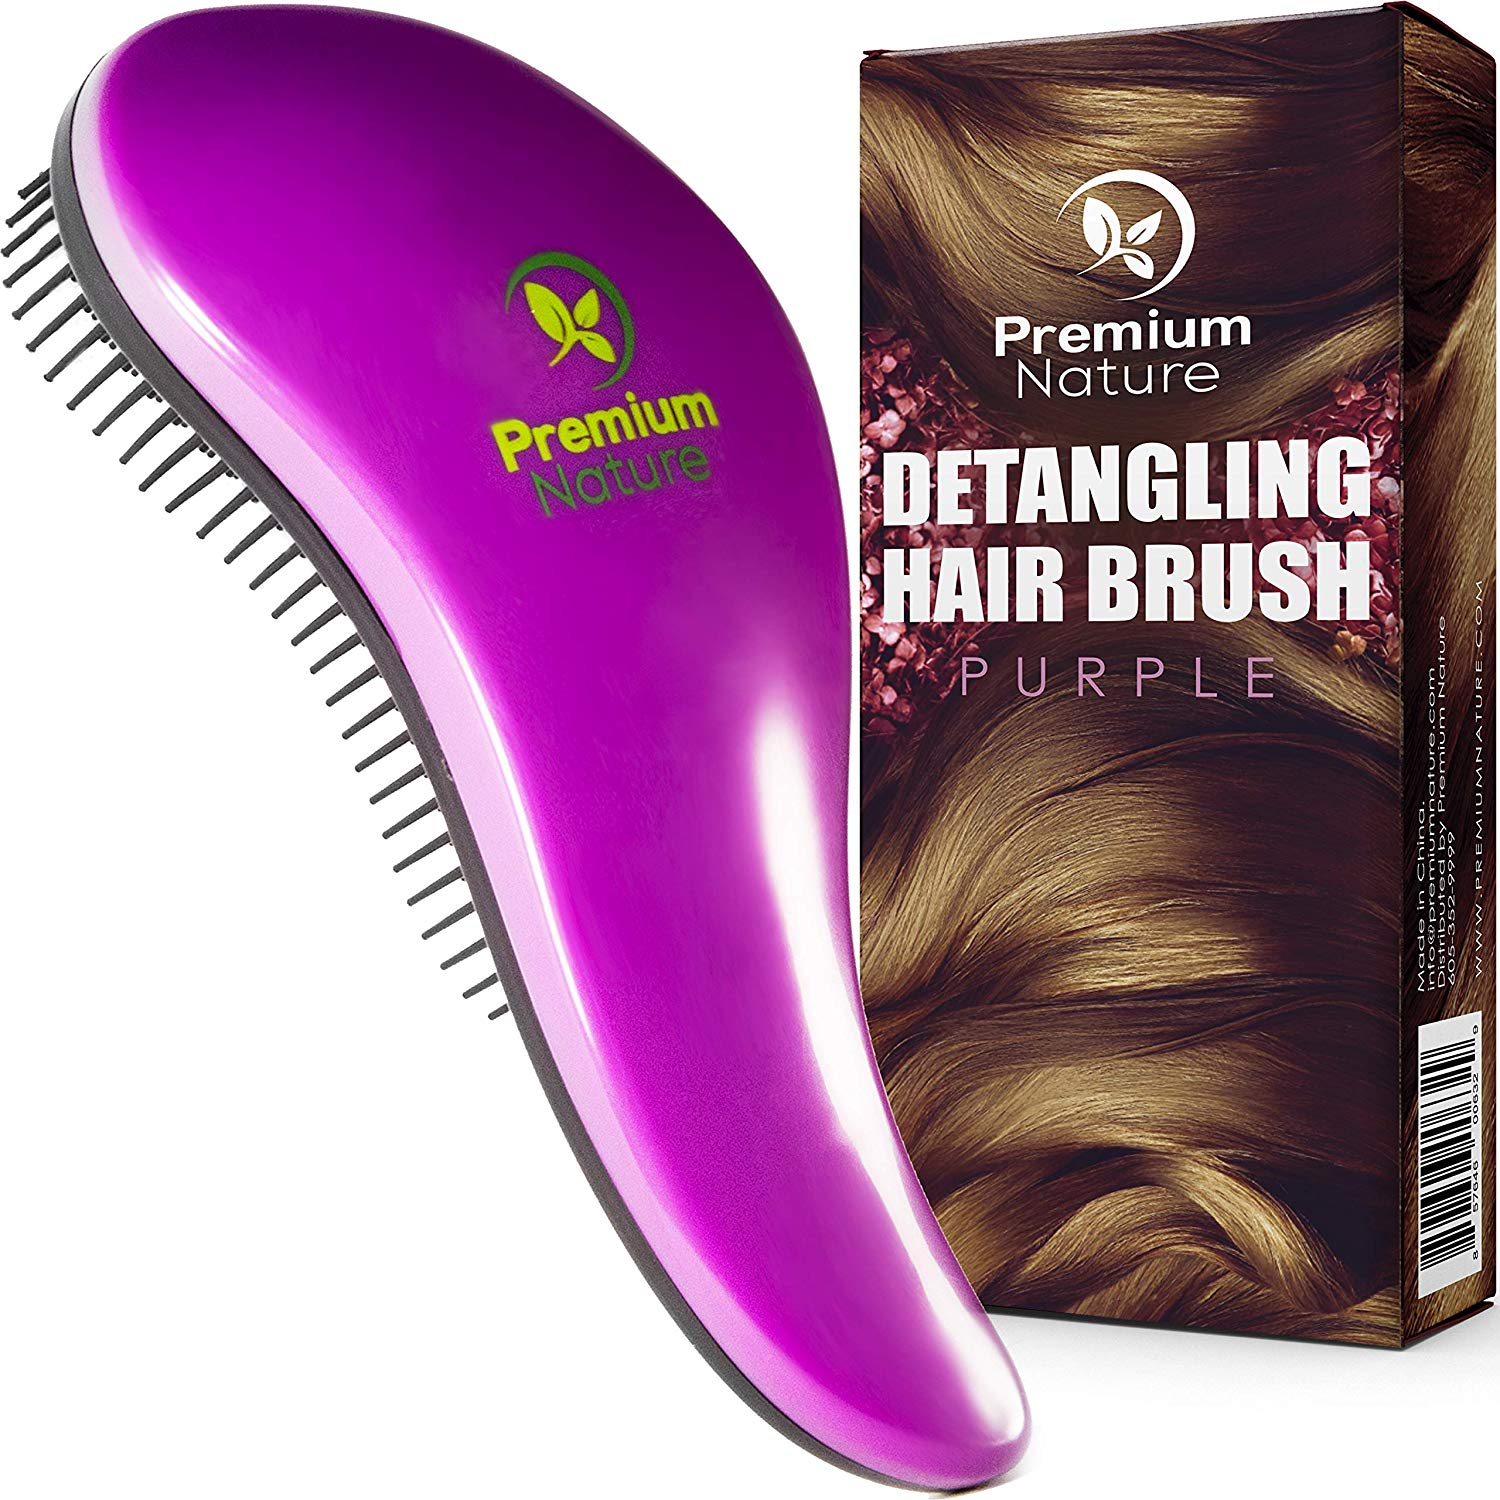 Detangling Hair Brush, Purple by Premium Nature